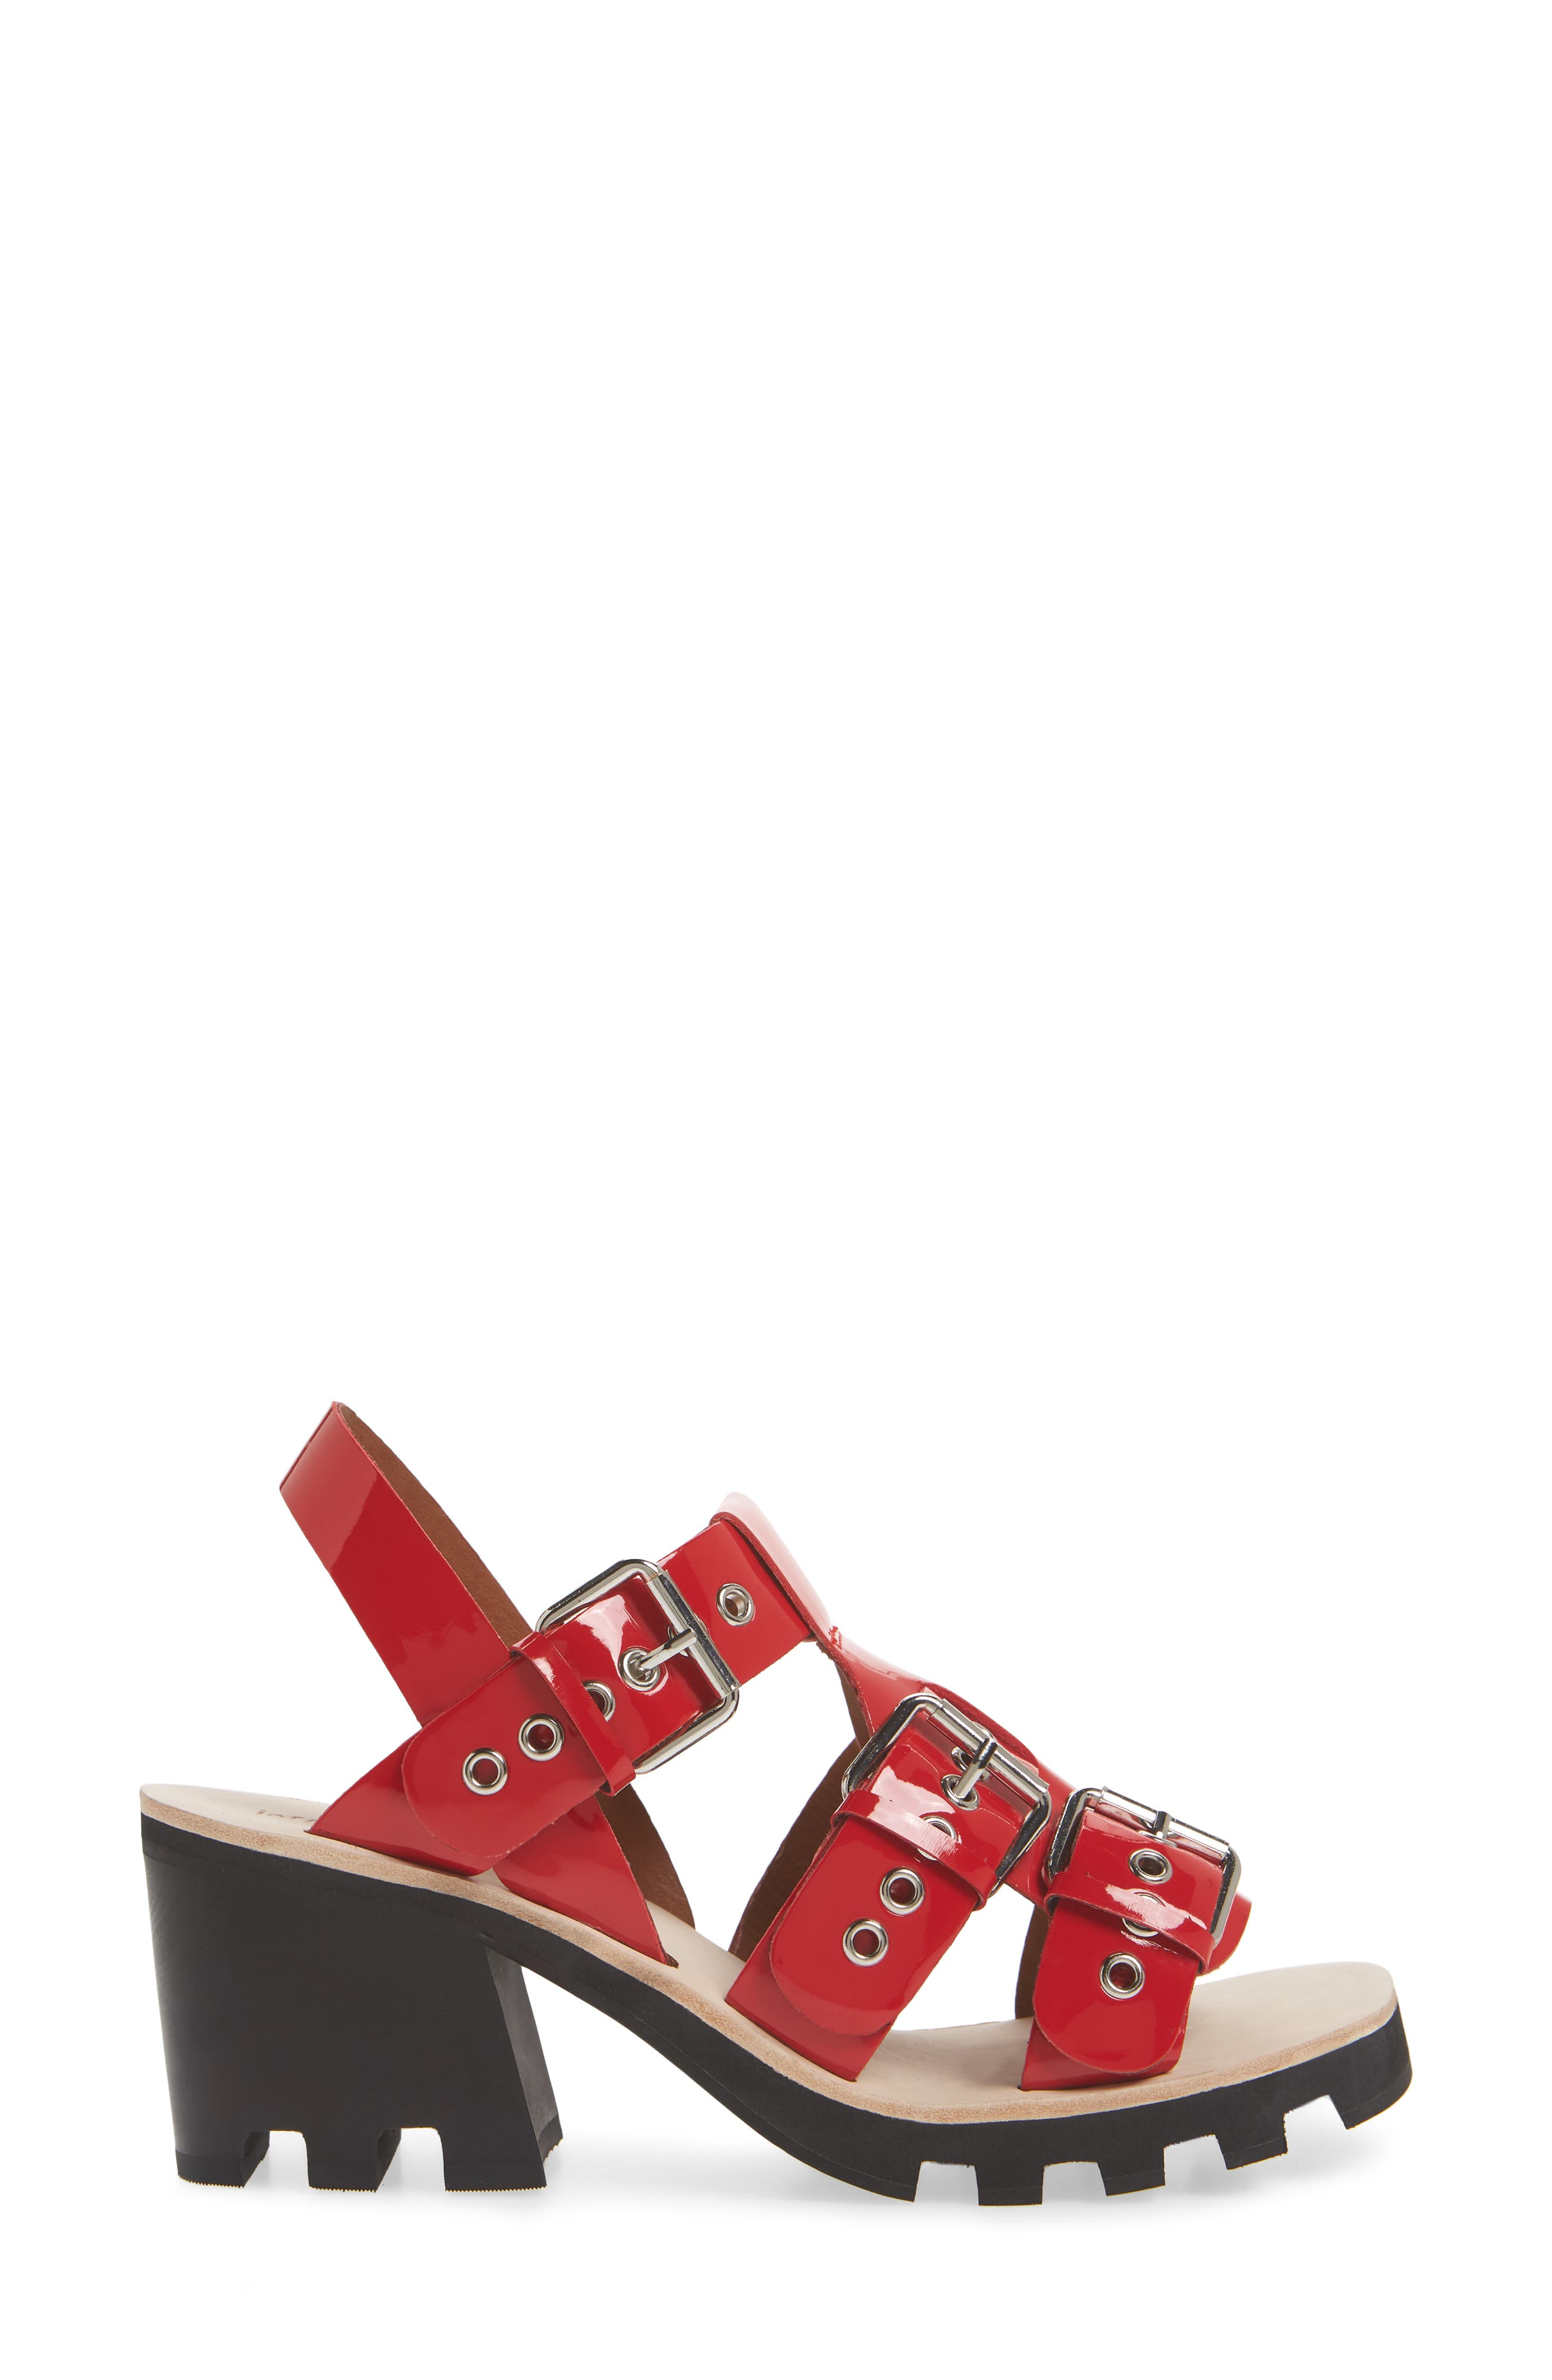 Riveter Lugged Buckle Sandal,                             Alternate thumbnail 3, color,                             Red Patent